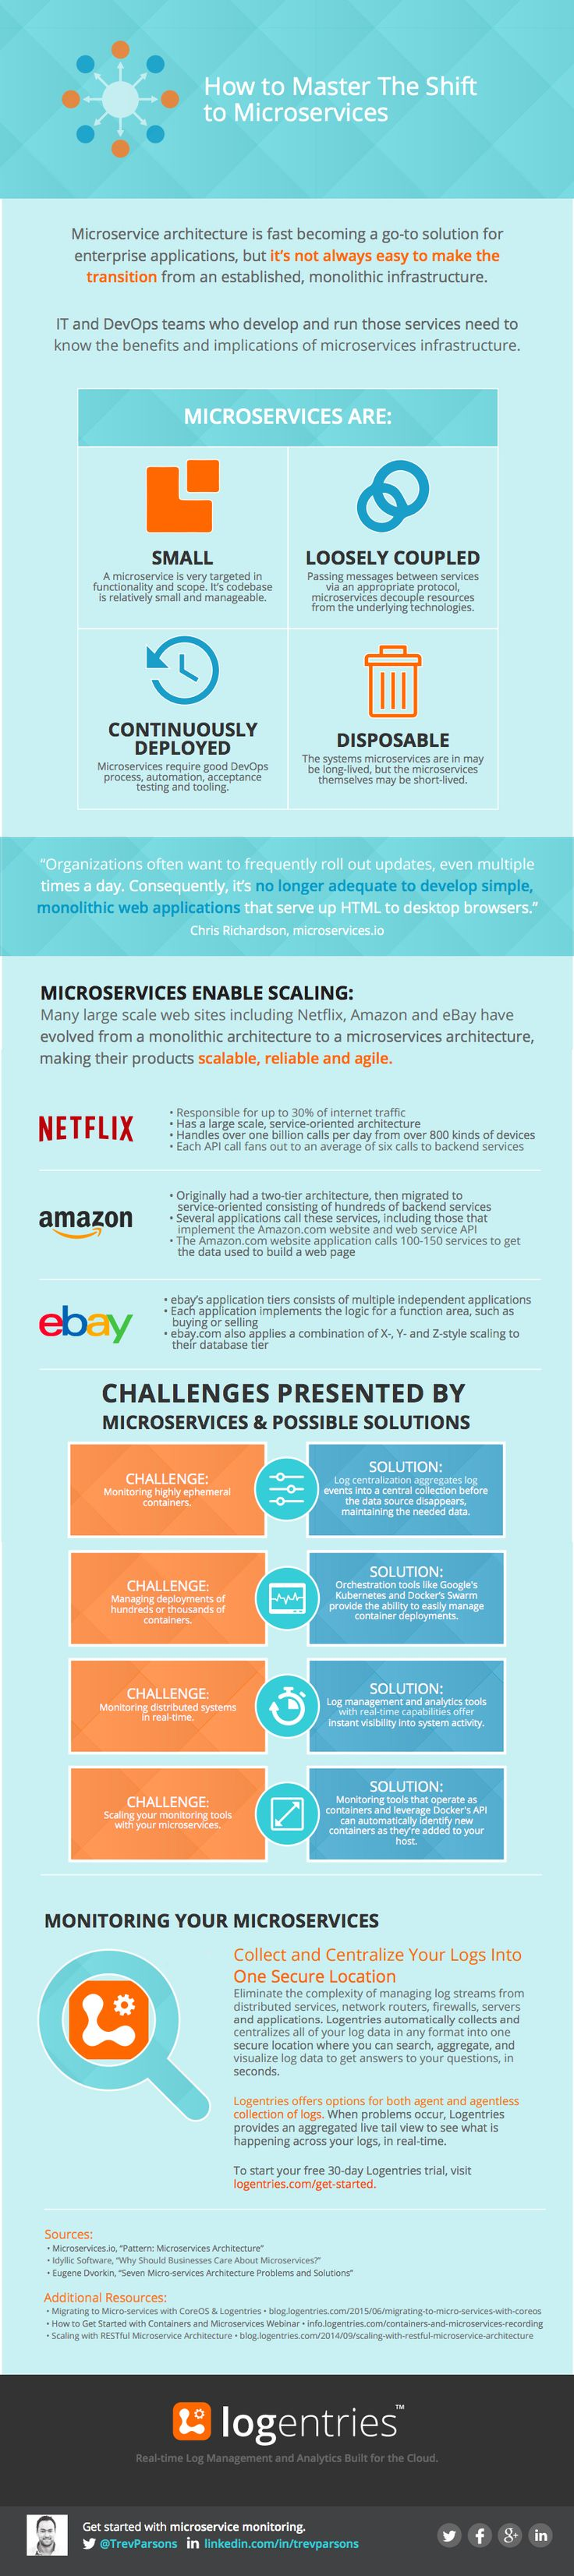 Infographic: Mastering the Shift to Microservices